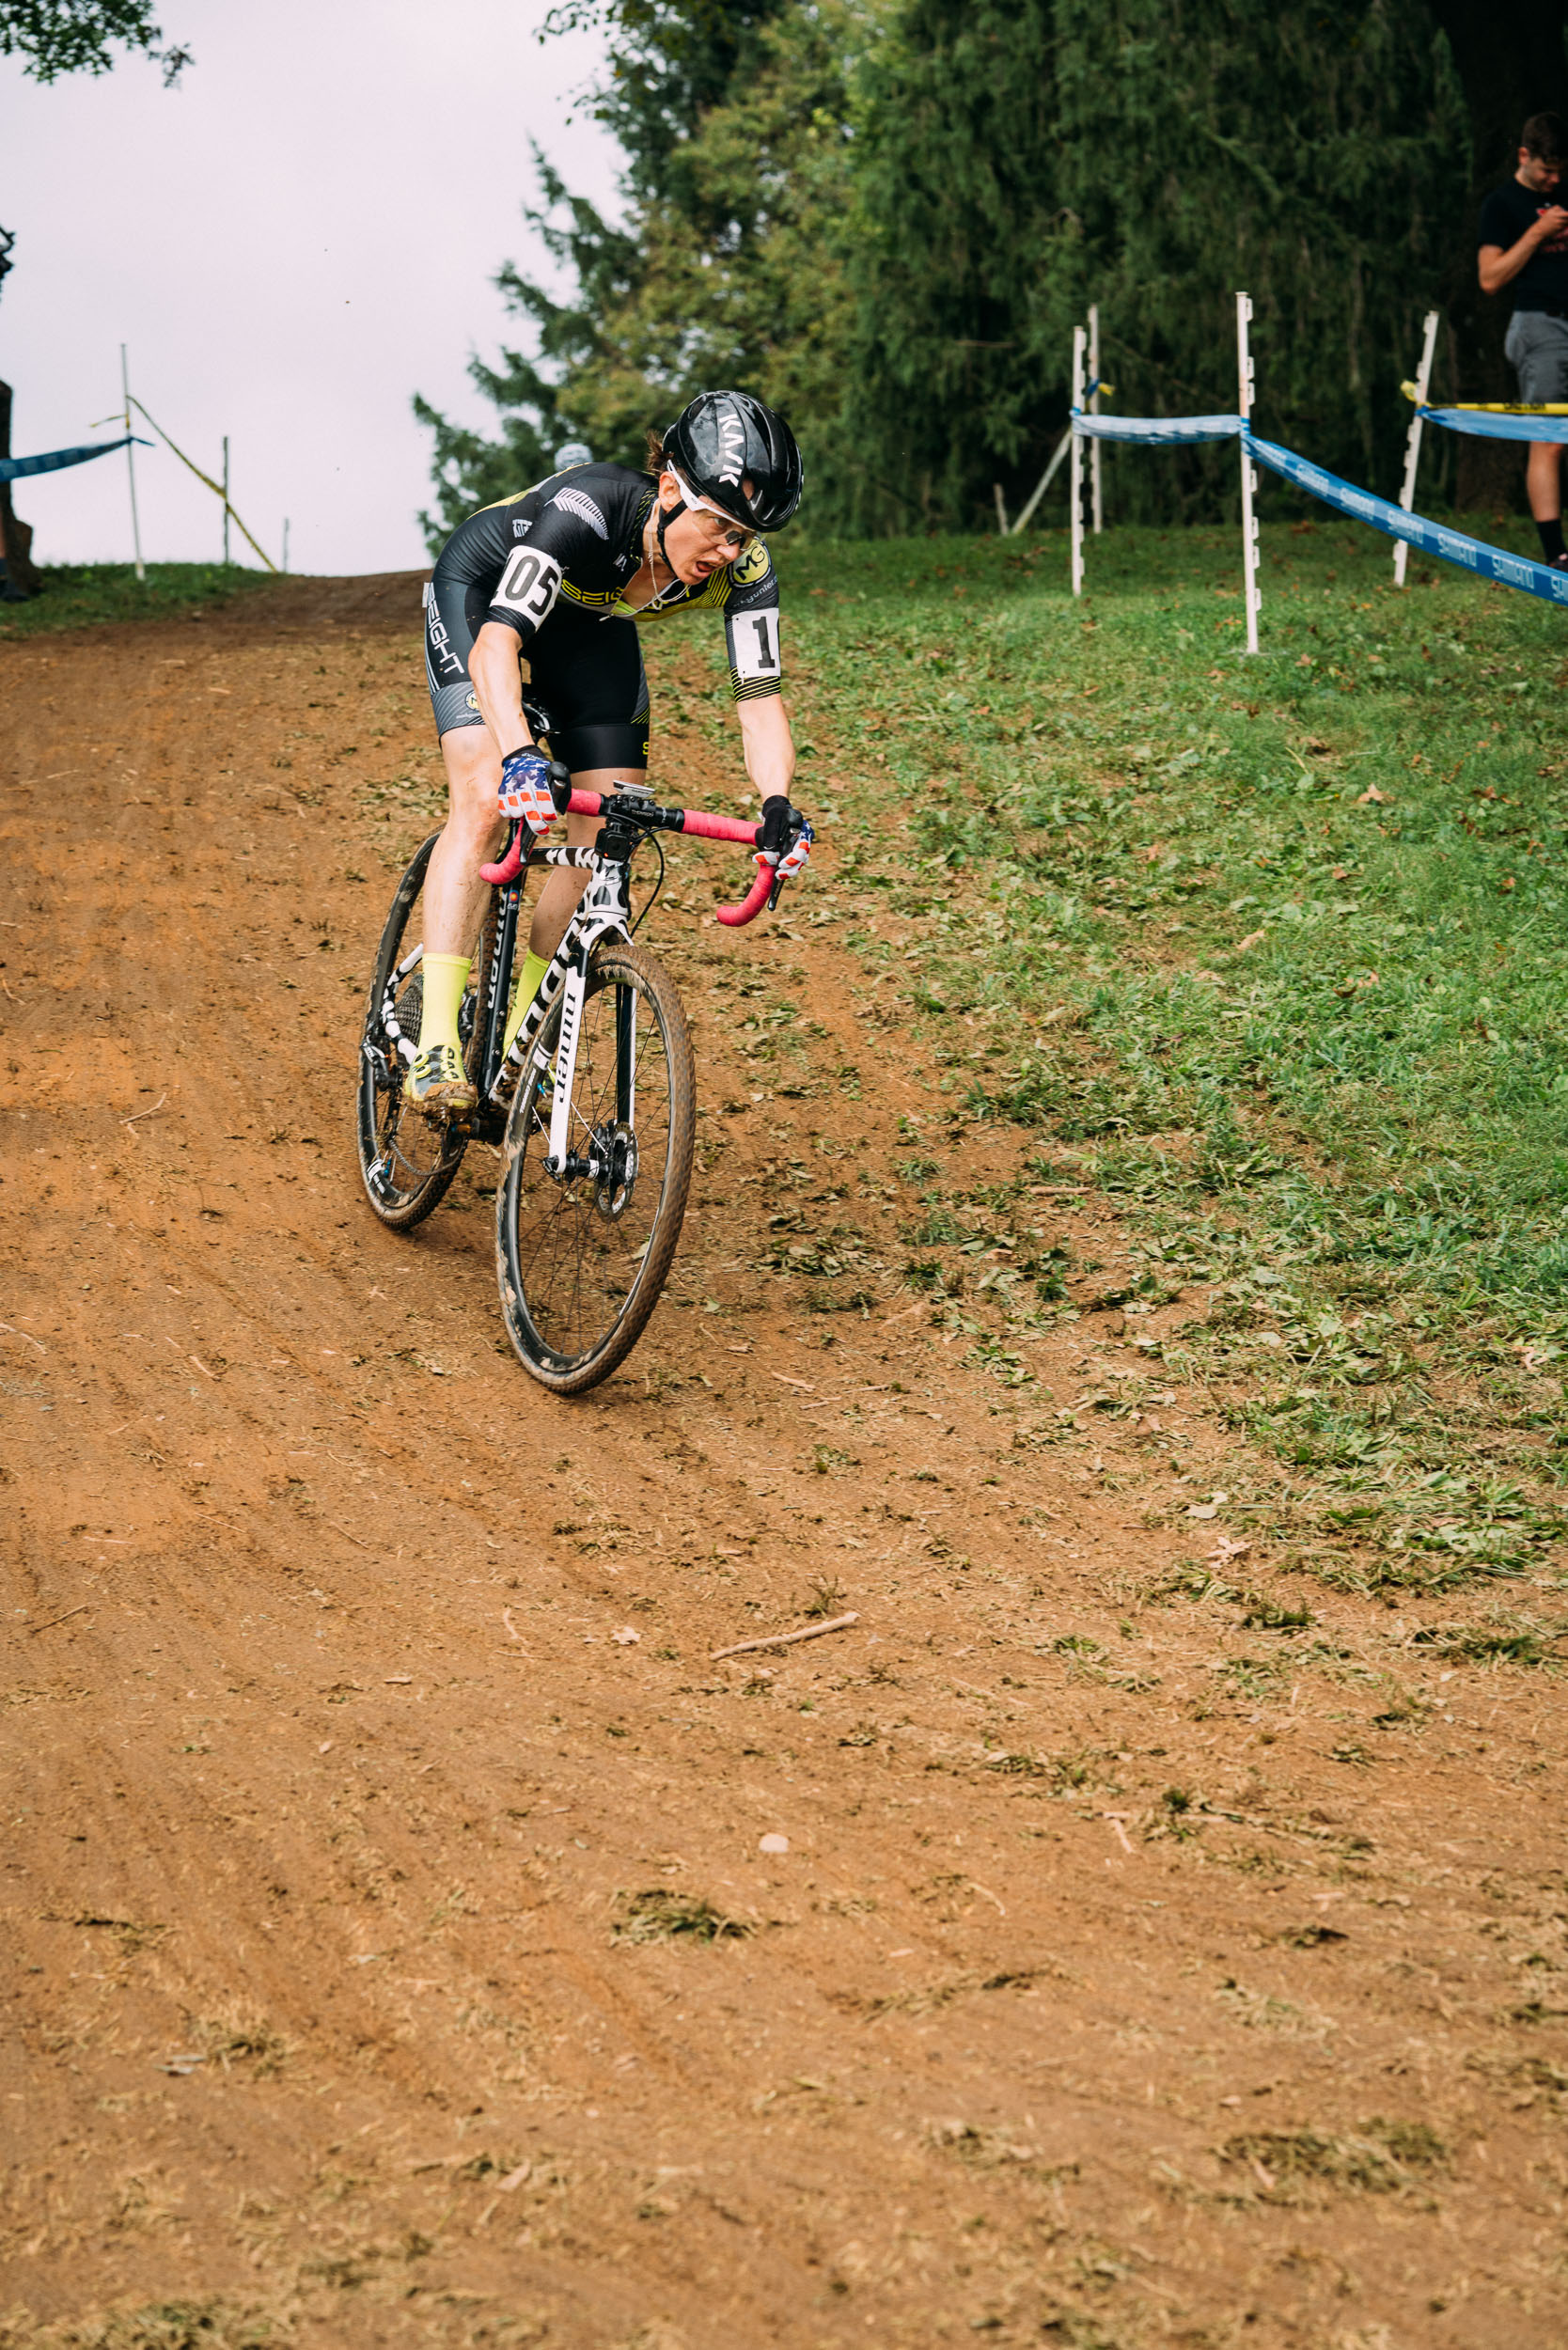 photo-rhetoric-to-be-determined-nittany-cyclocross-1115.jpg